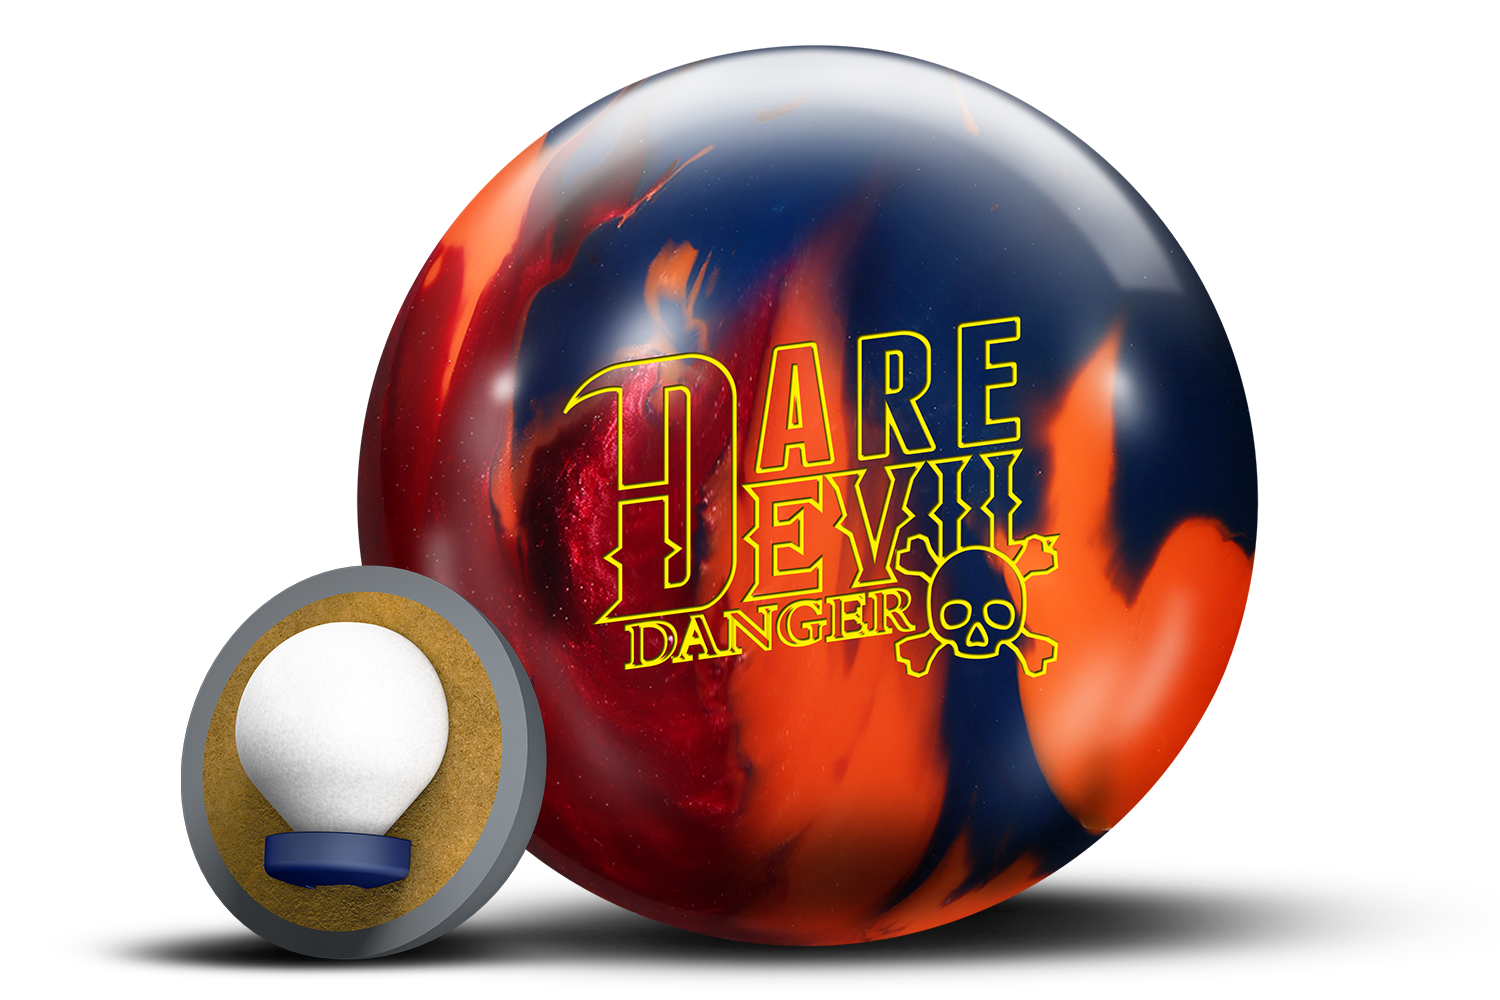 ROTOGRIP DARE DEVIL DANGER